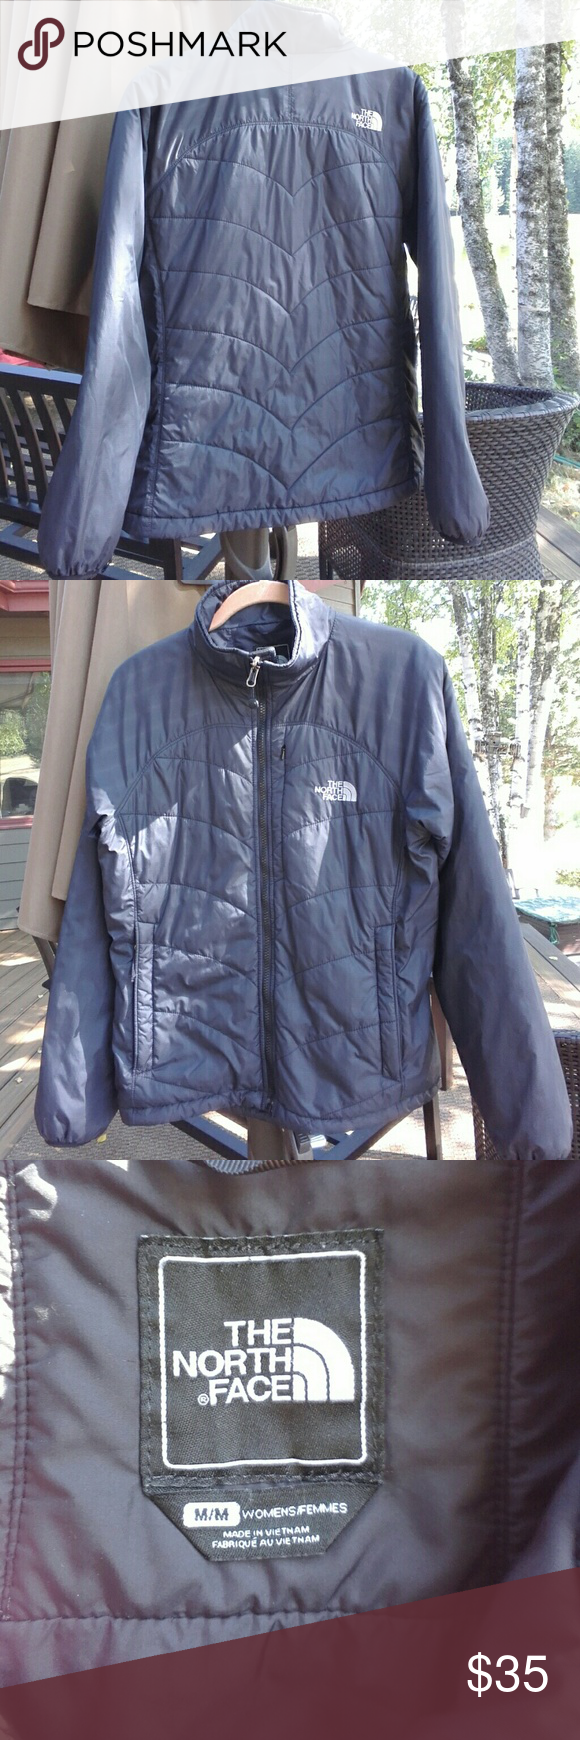 Sold North Face Jacket North Face Jacket Jackets The North Face [ 1740 x 580 Pixel ]